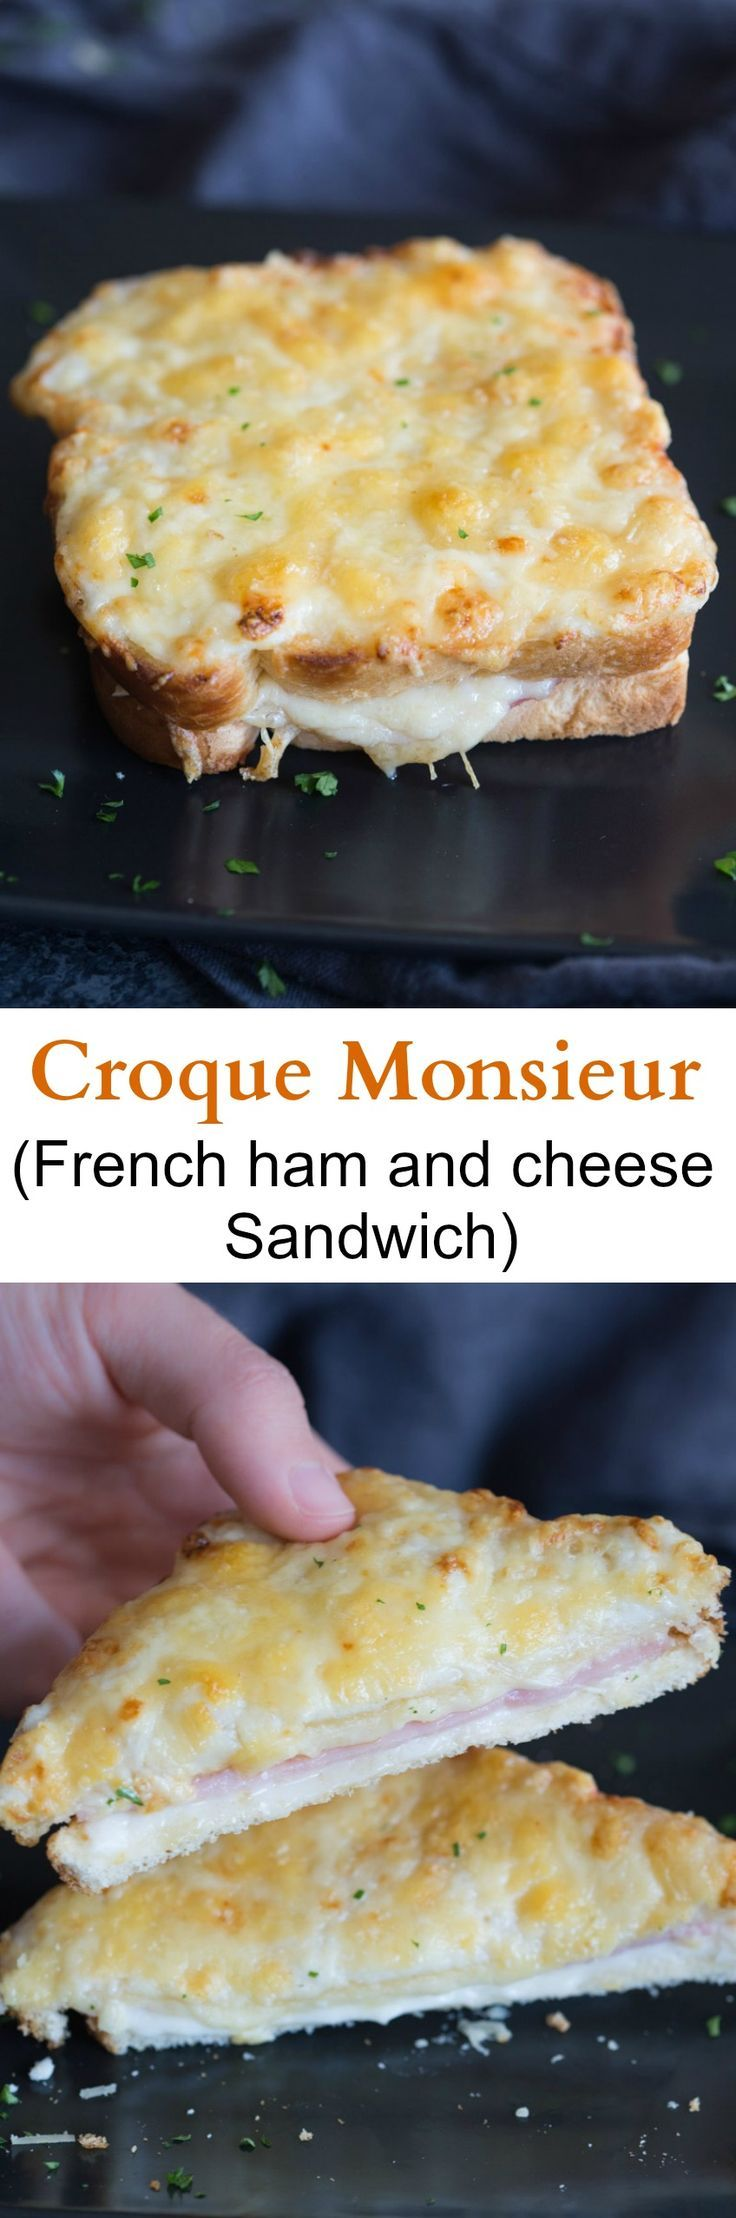 Croque Monsieur Recipe Recipes French Cooking Food